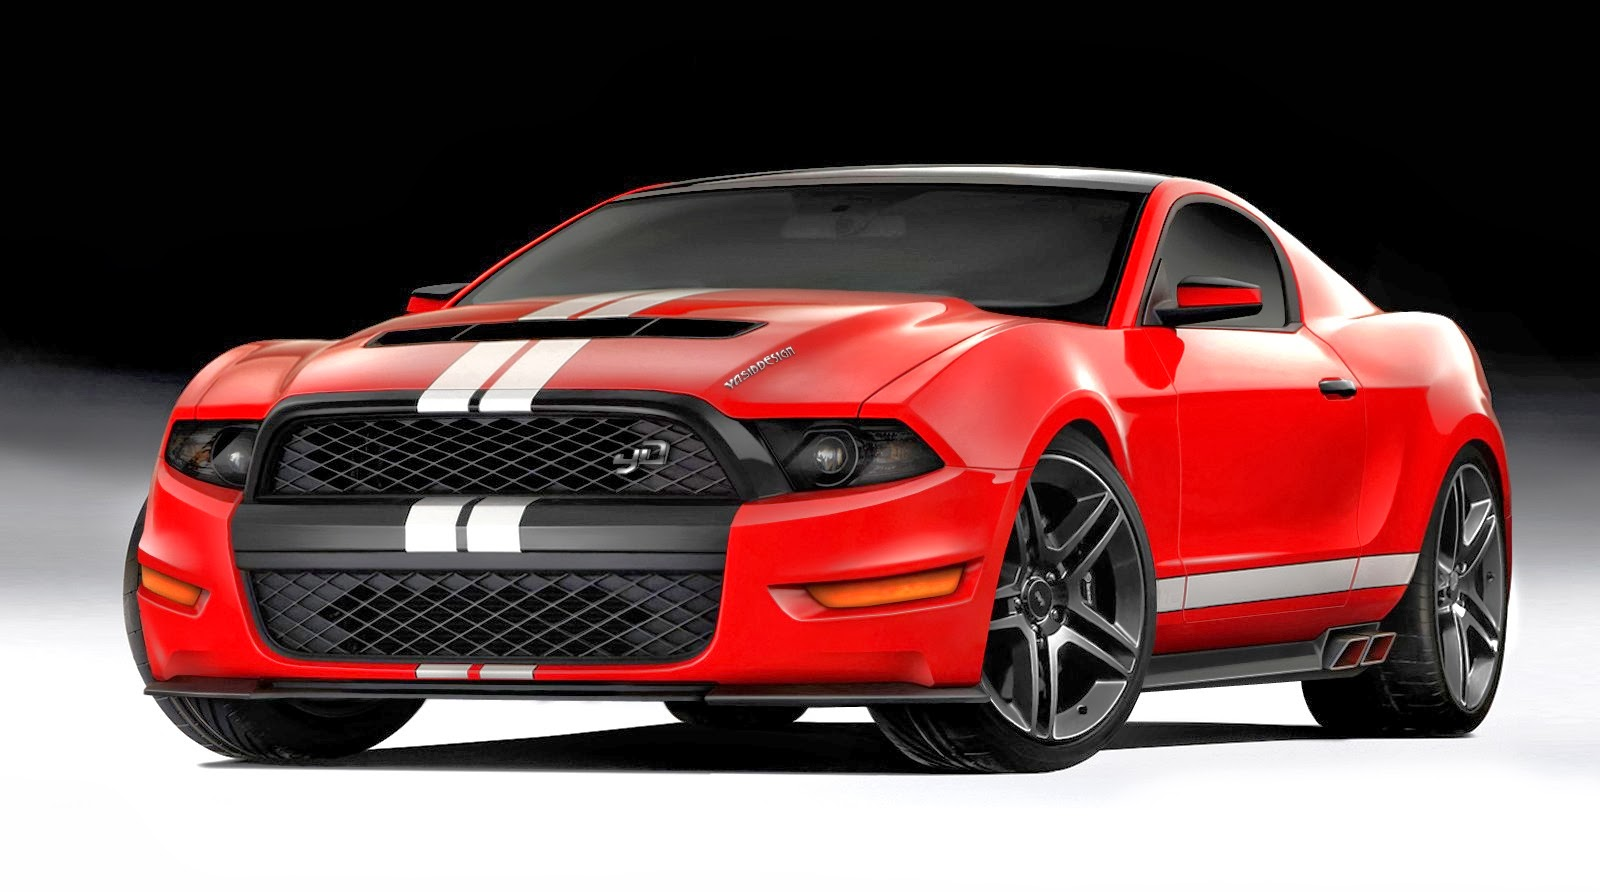 new ford mustang racing car best wallpaper views. Black Bedroom Furniture Sets. Home Design Ideas